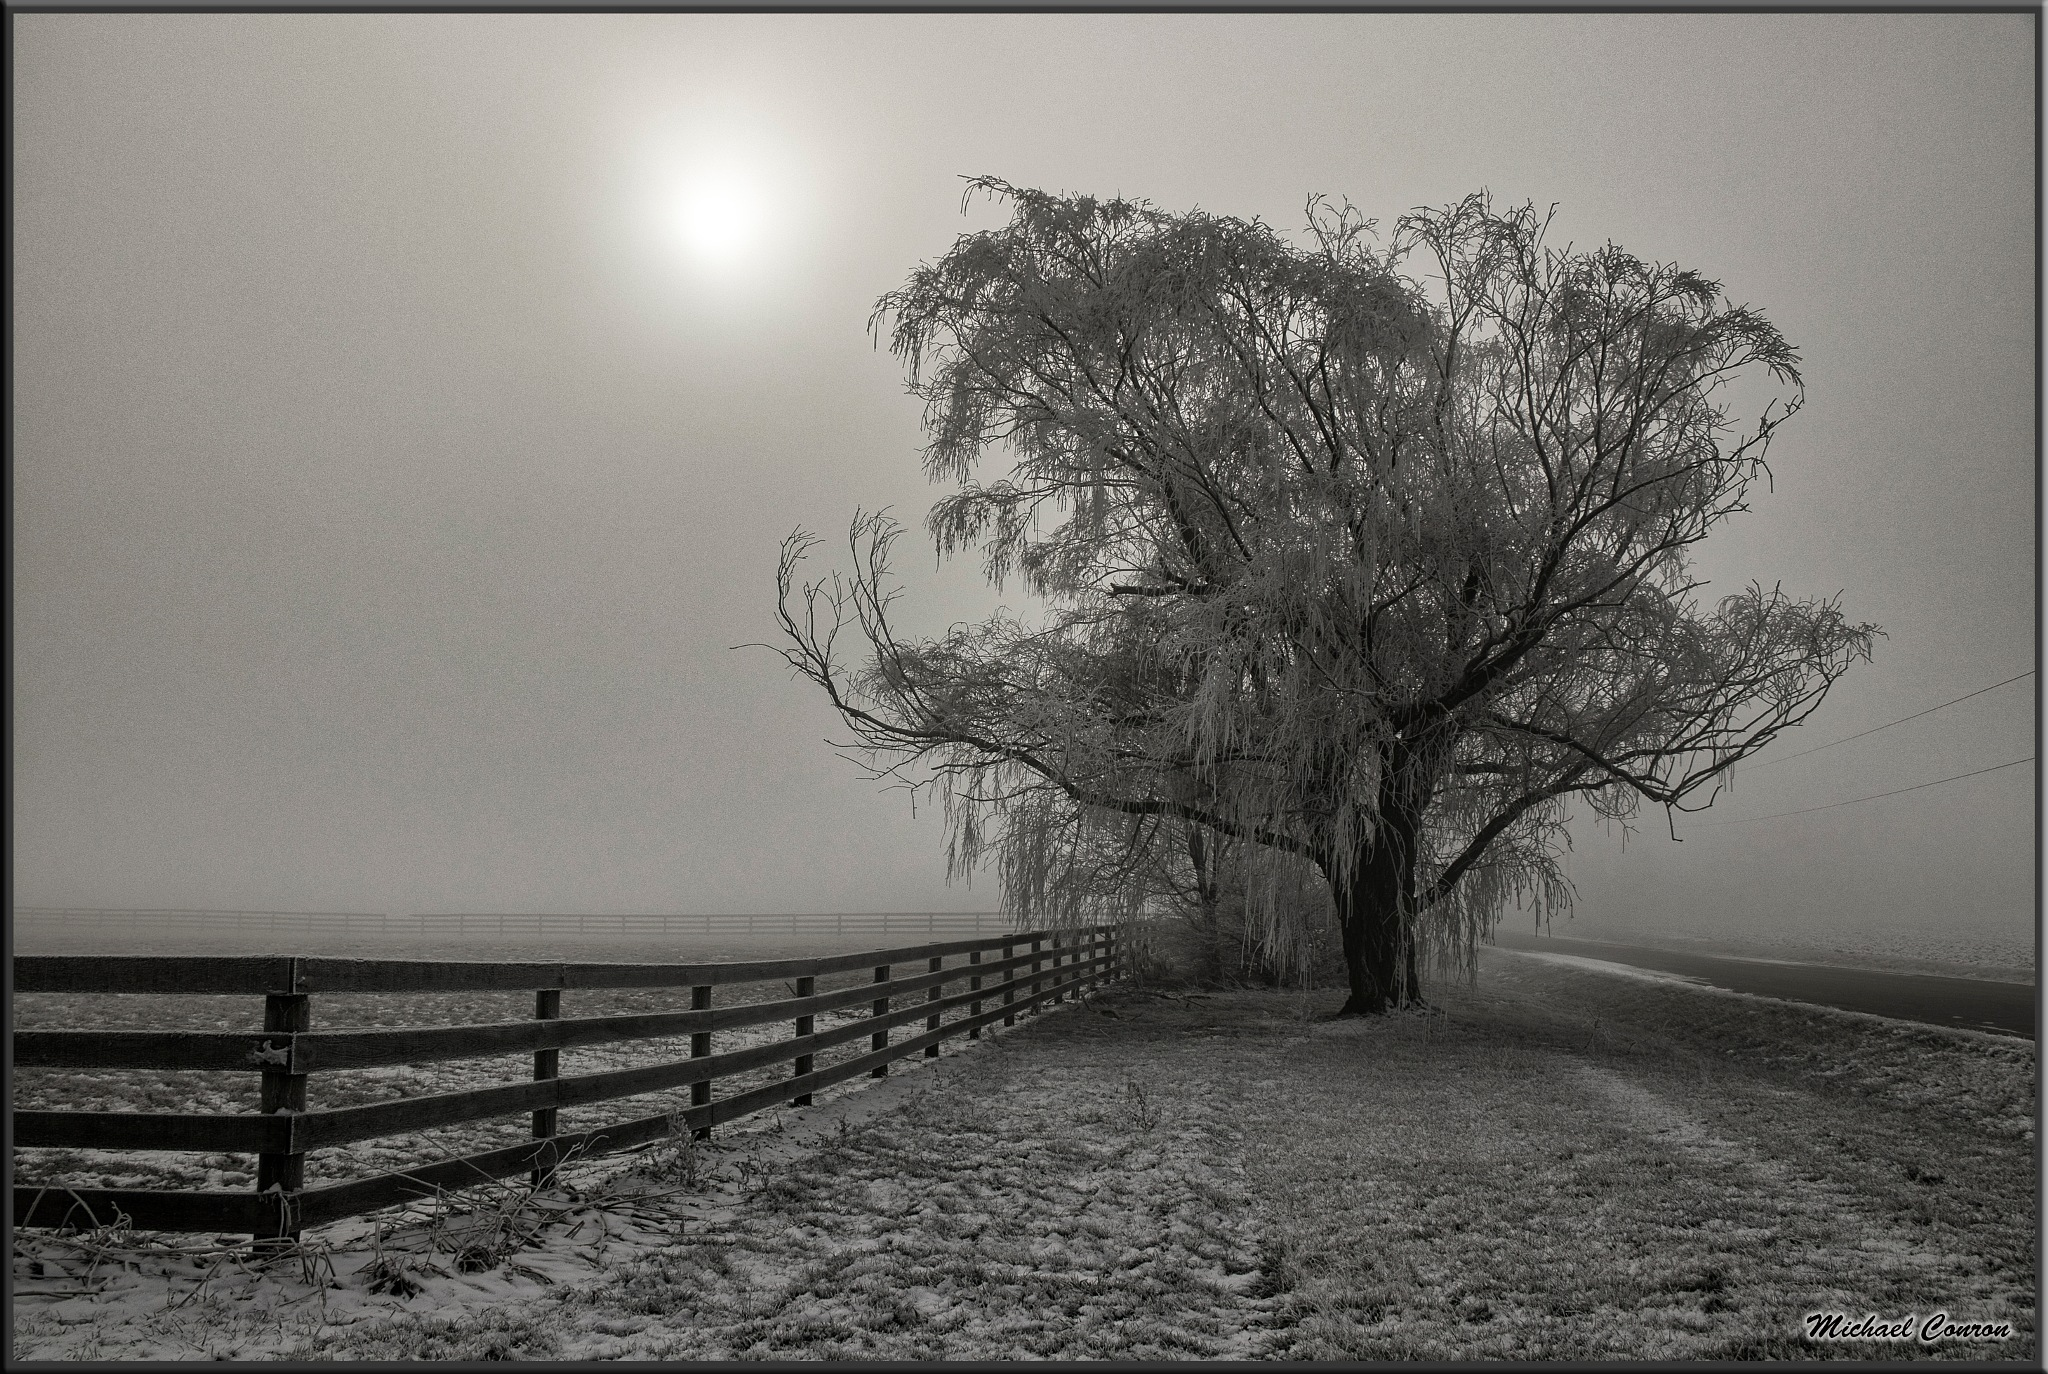 Into the Mist by Michael Conron